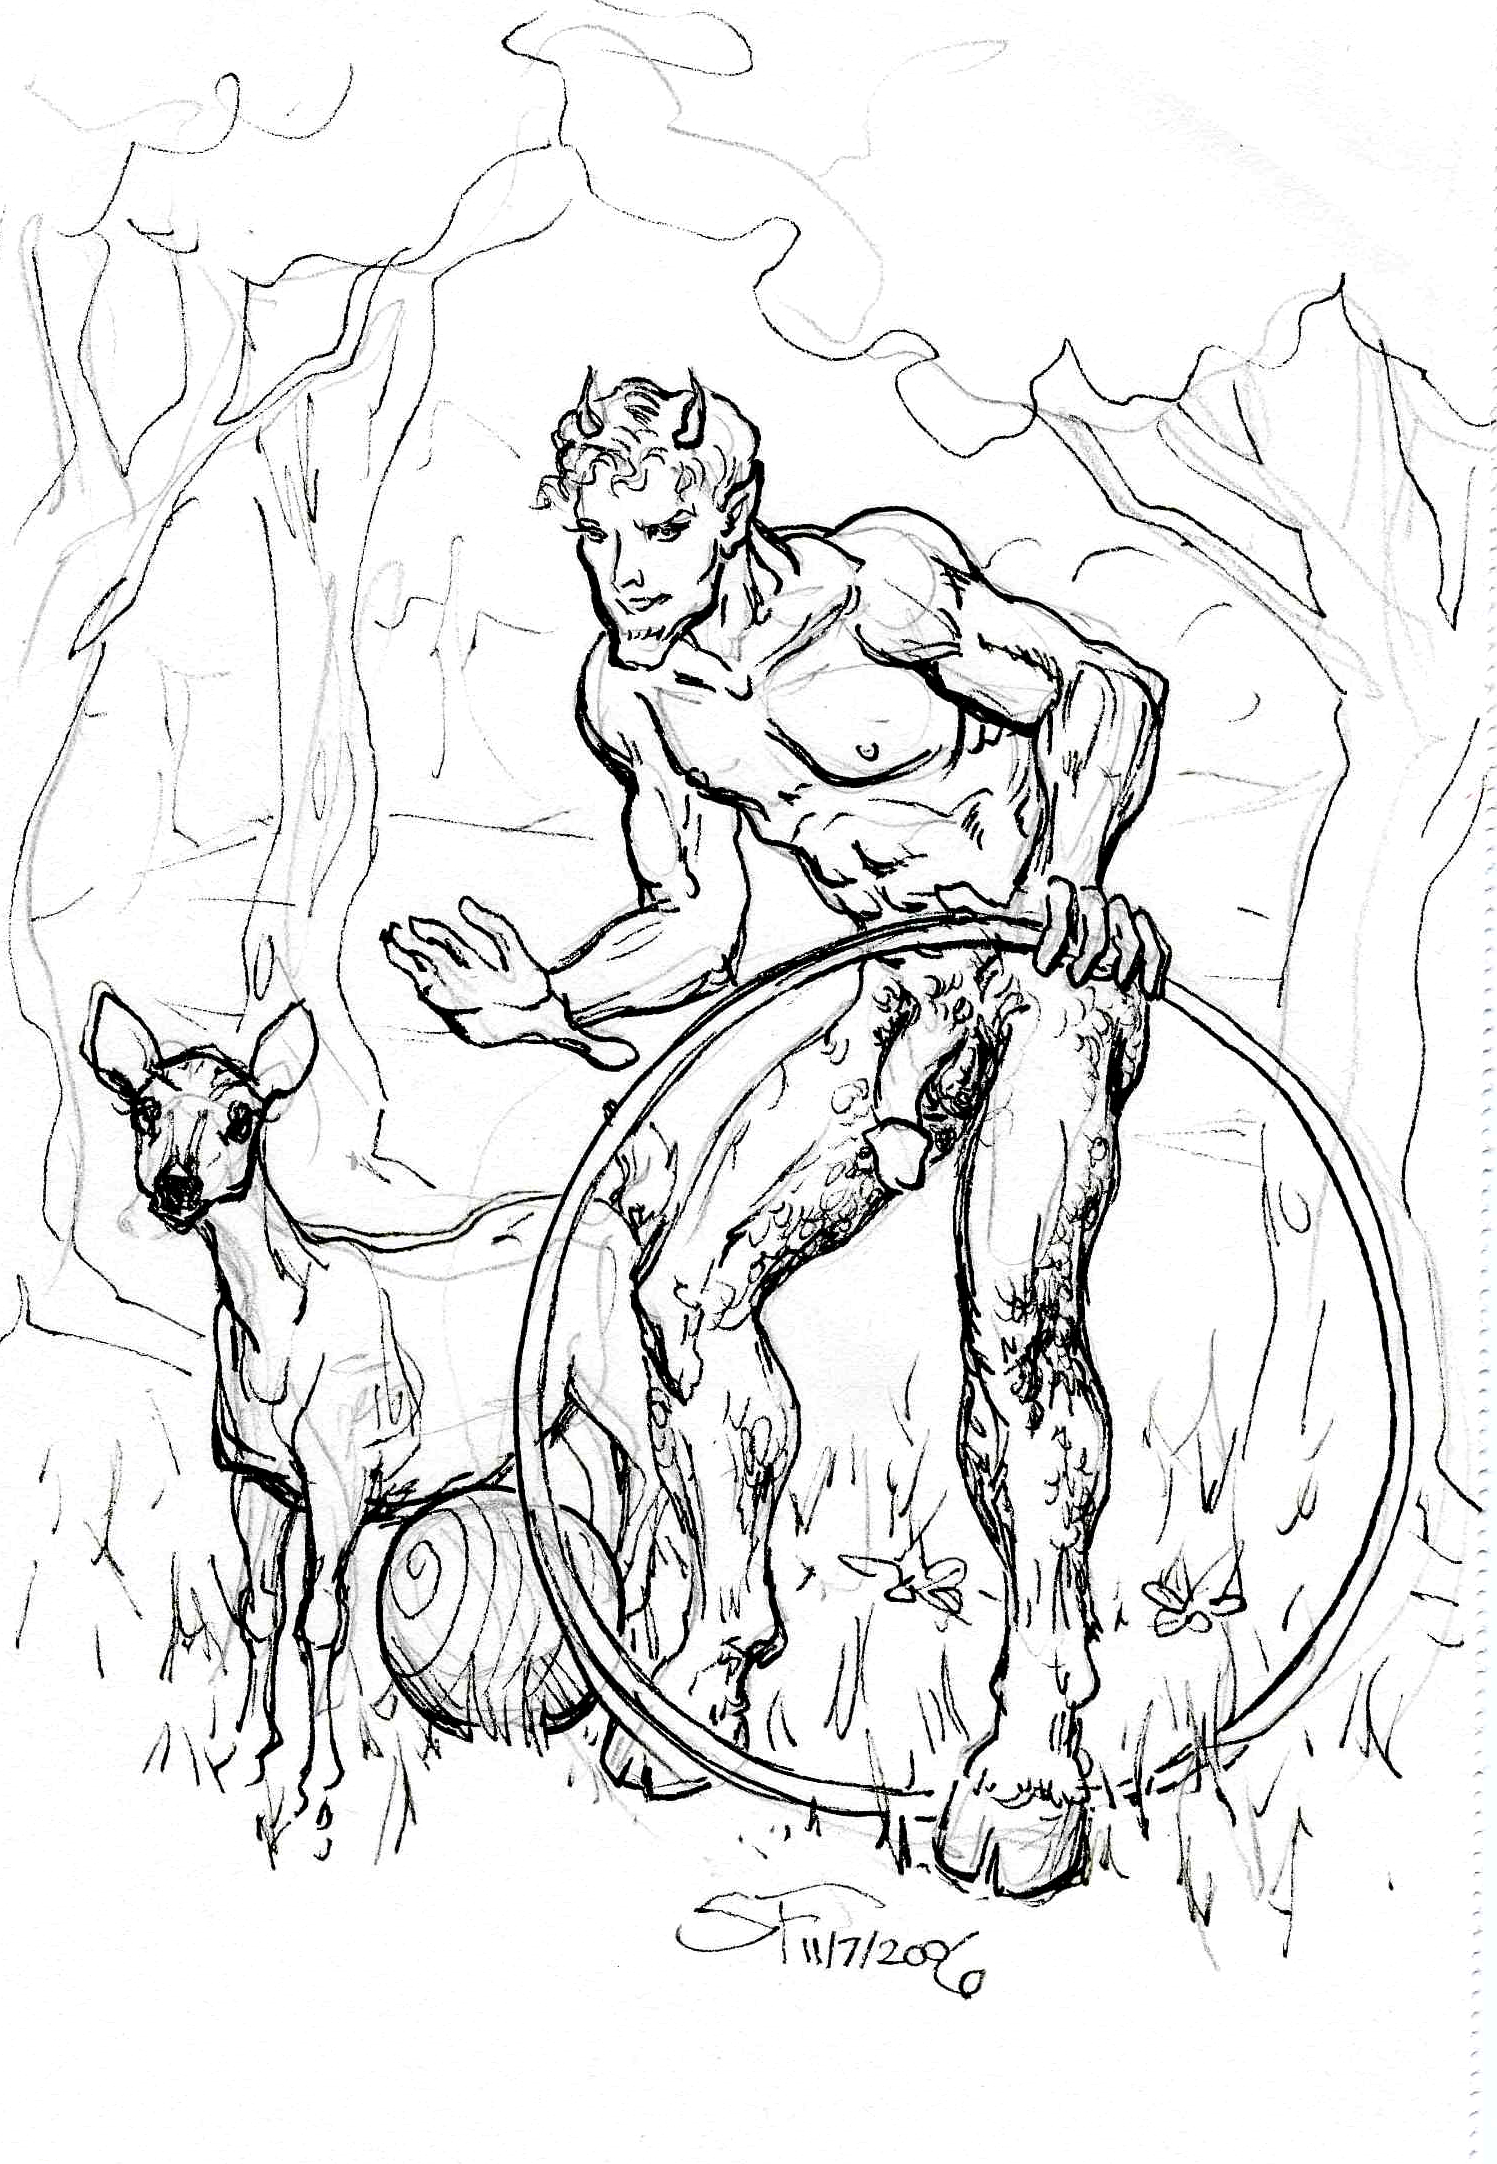 Naughty Faun with Deer 5x7 11 7 2006 by Suzanne Forbes